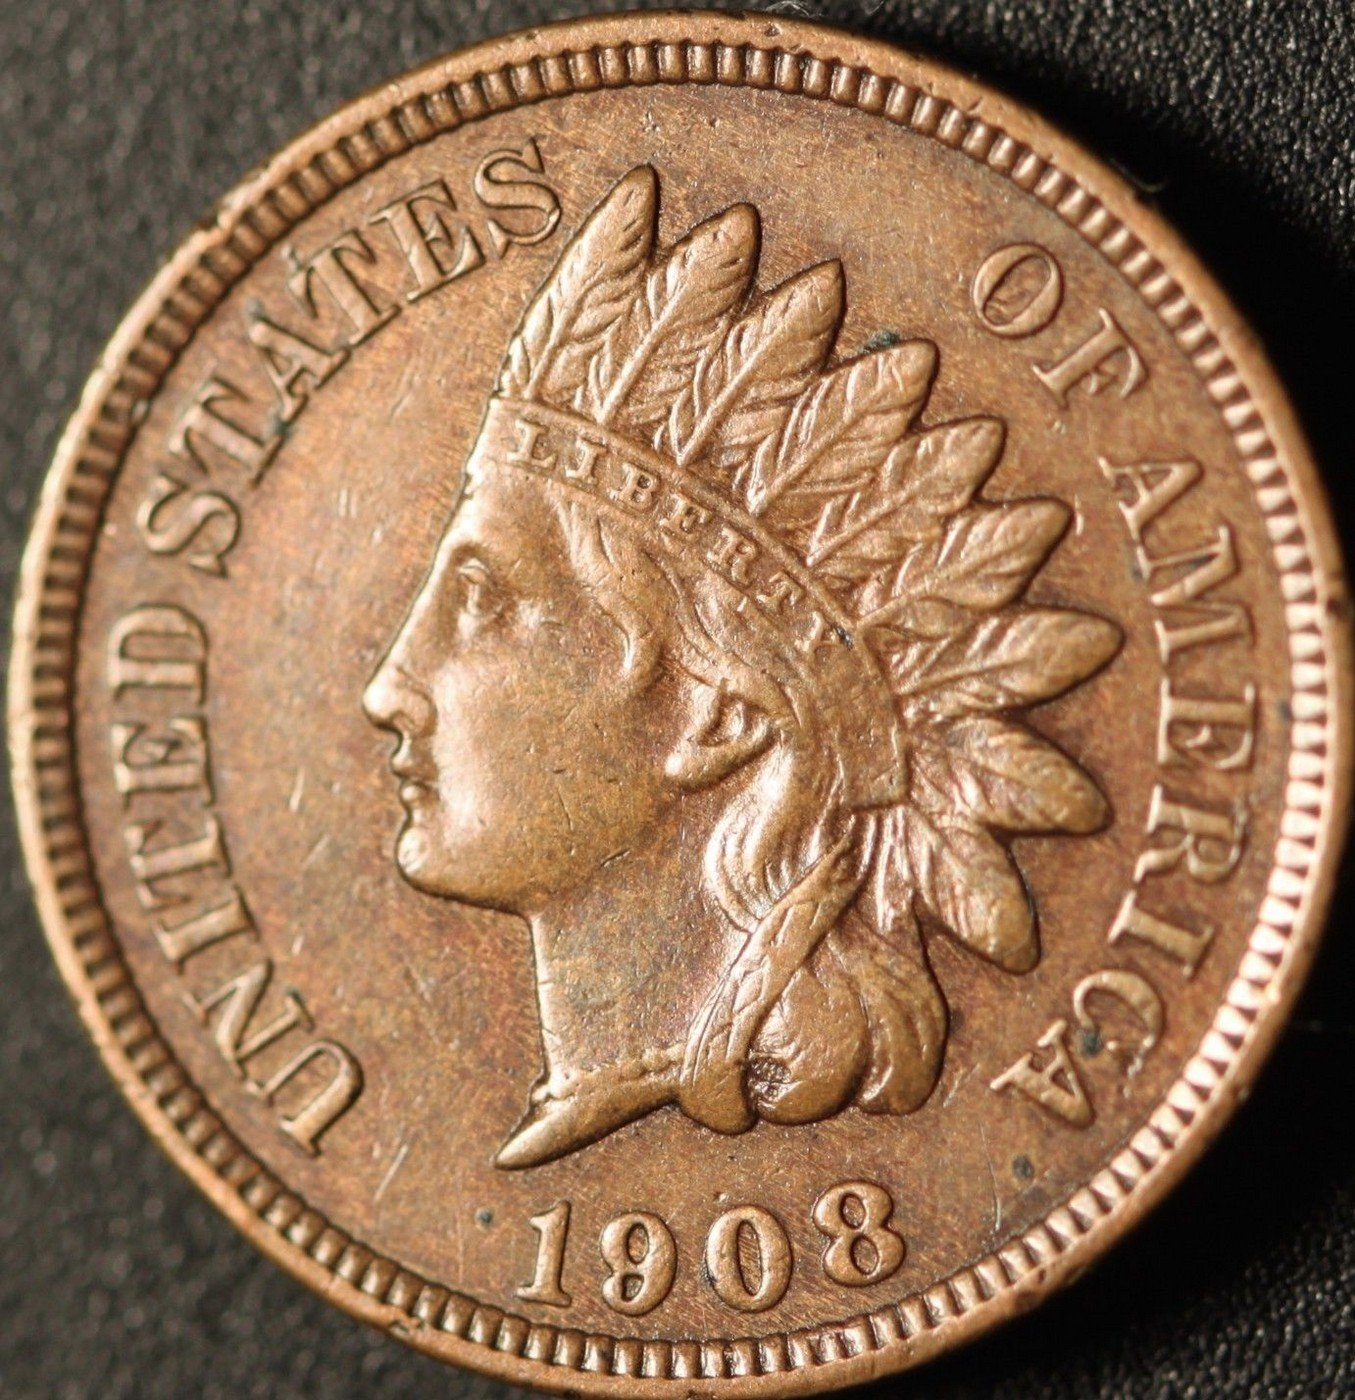 1908 MPD-003 - Indian Head Cent - Photo by Ed Nathanson